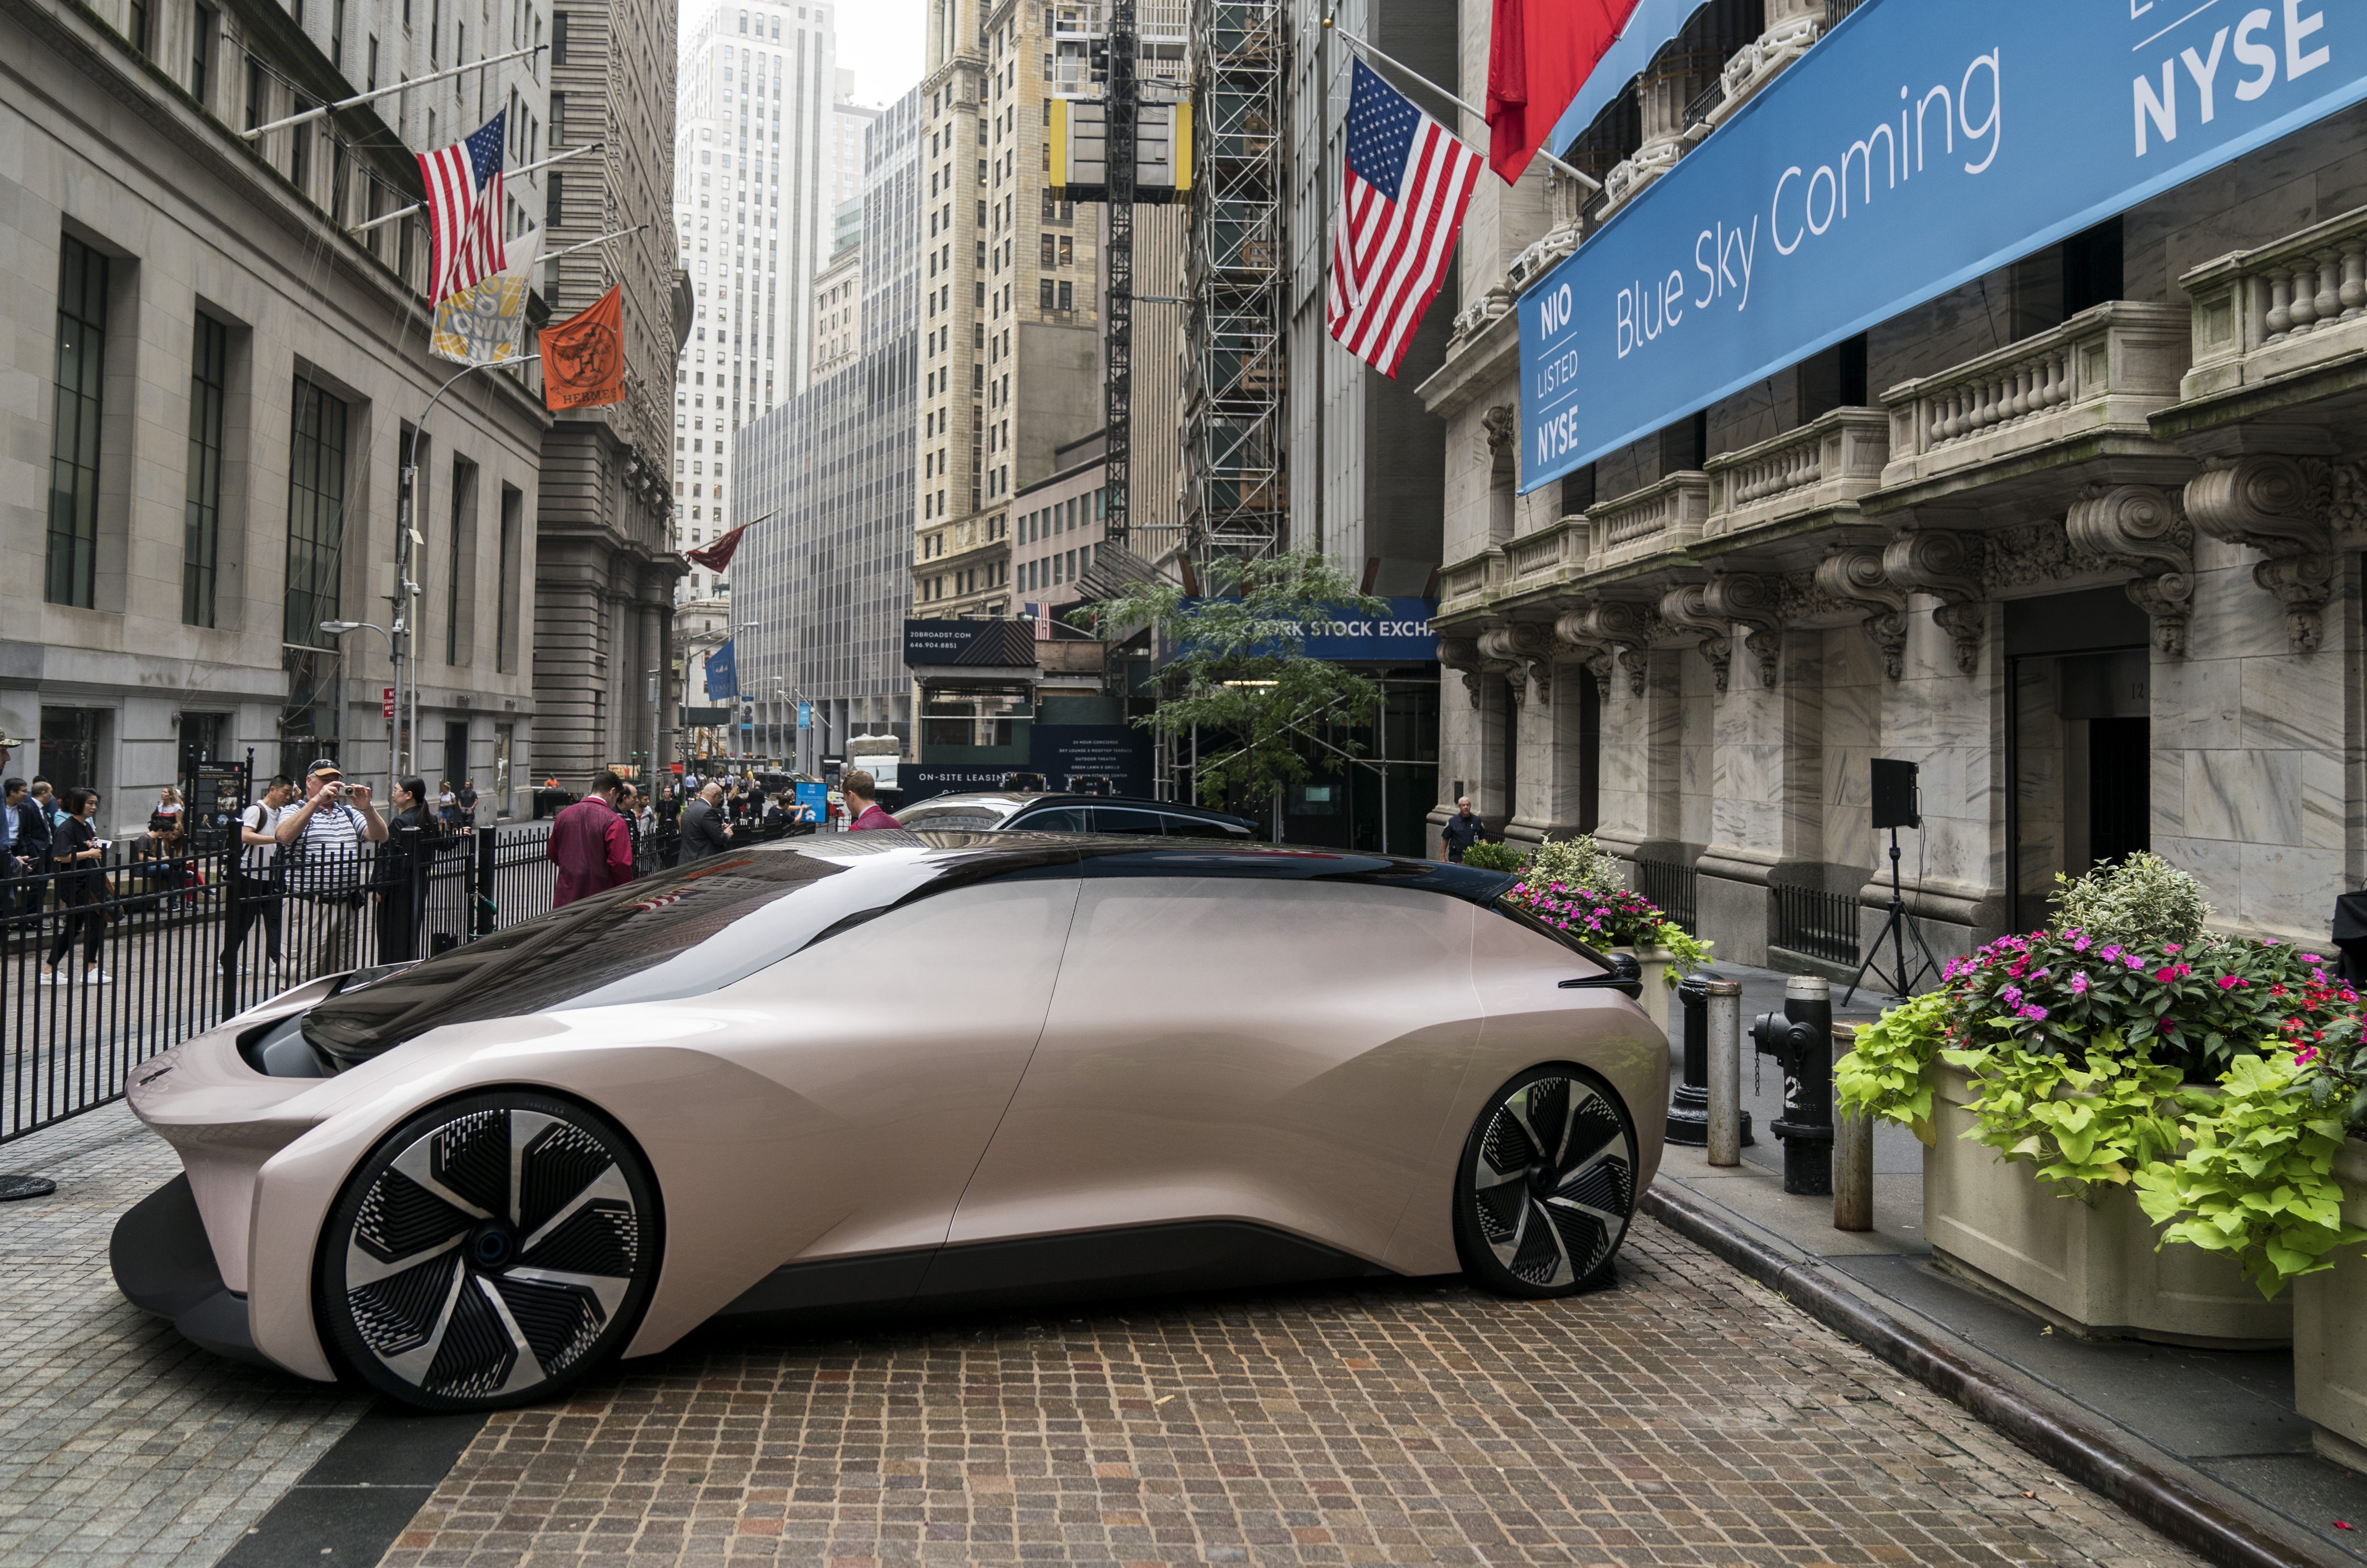 A vehicle from electric car maker NIO sits outside of the New York Stock Exchange (NYSE), September 12, 2018 in New York City. The Shanghai-based electric car company opened for trading at $6 per share. (Photo by Drew Angerer/Getty Images)